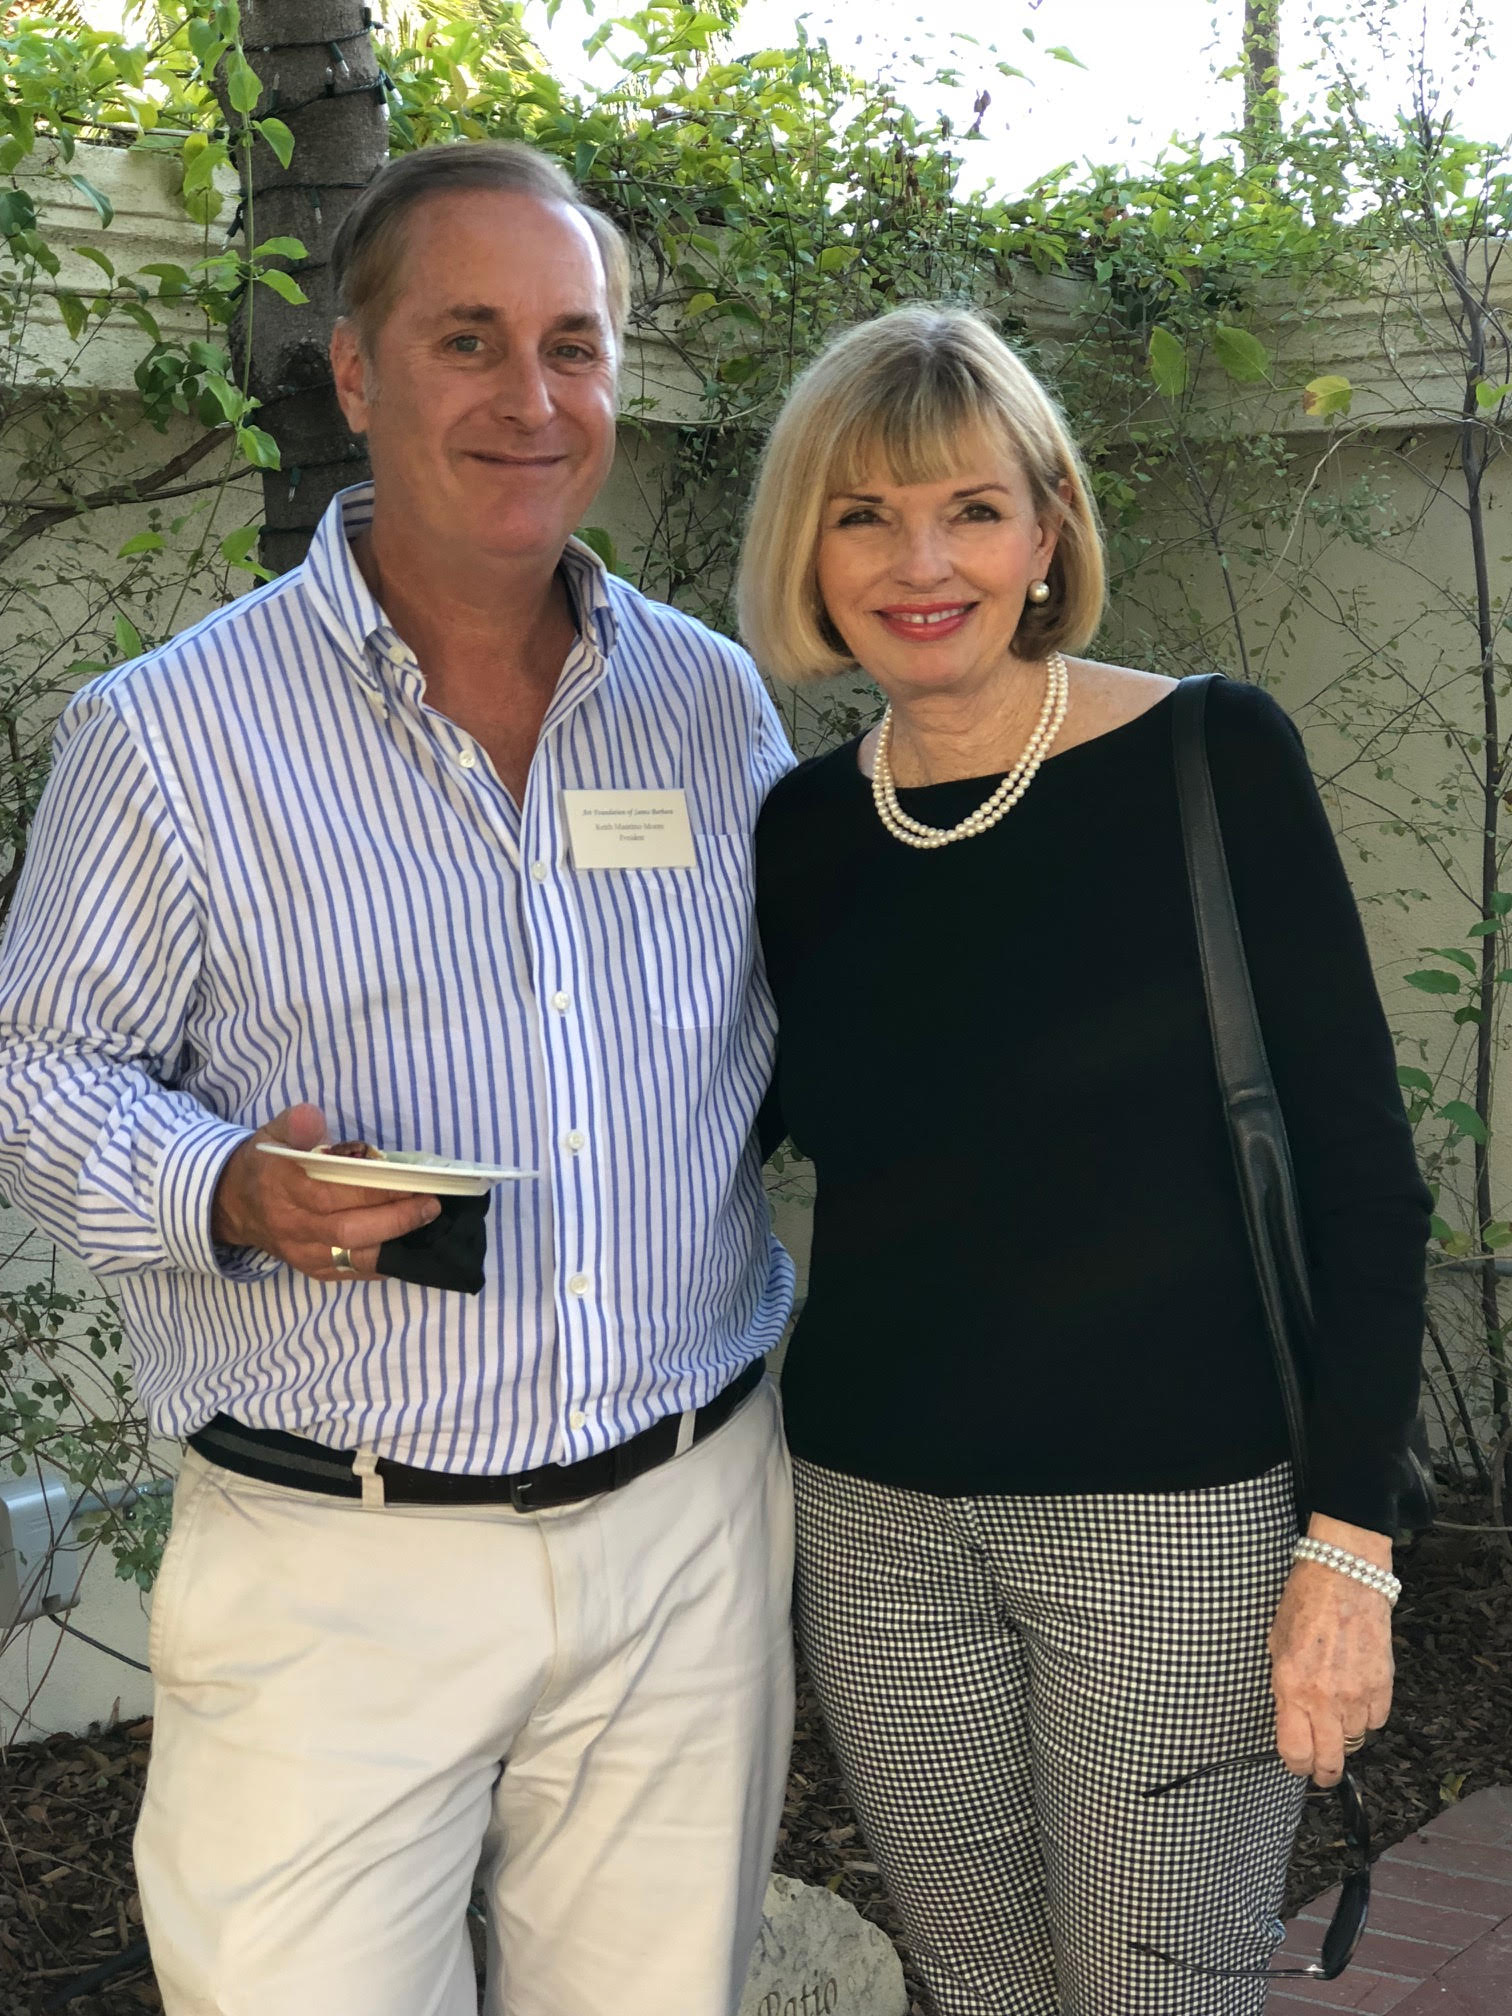 Left to right:  Keith Mautino Moore, President and Trustee and Diane Waterhouse, Advisory Board Member  who helped organize the Art Exhibition.